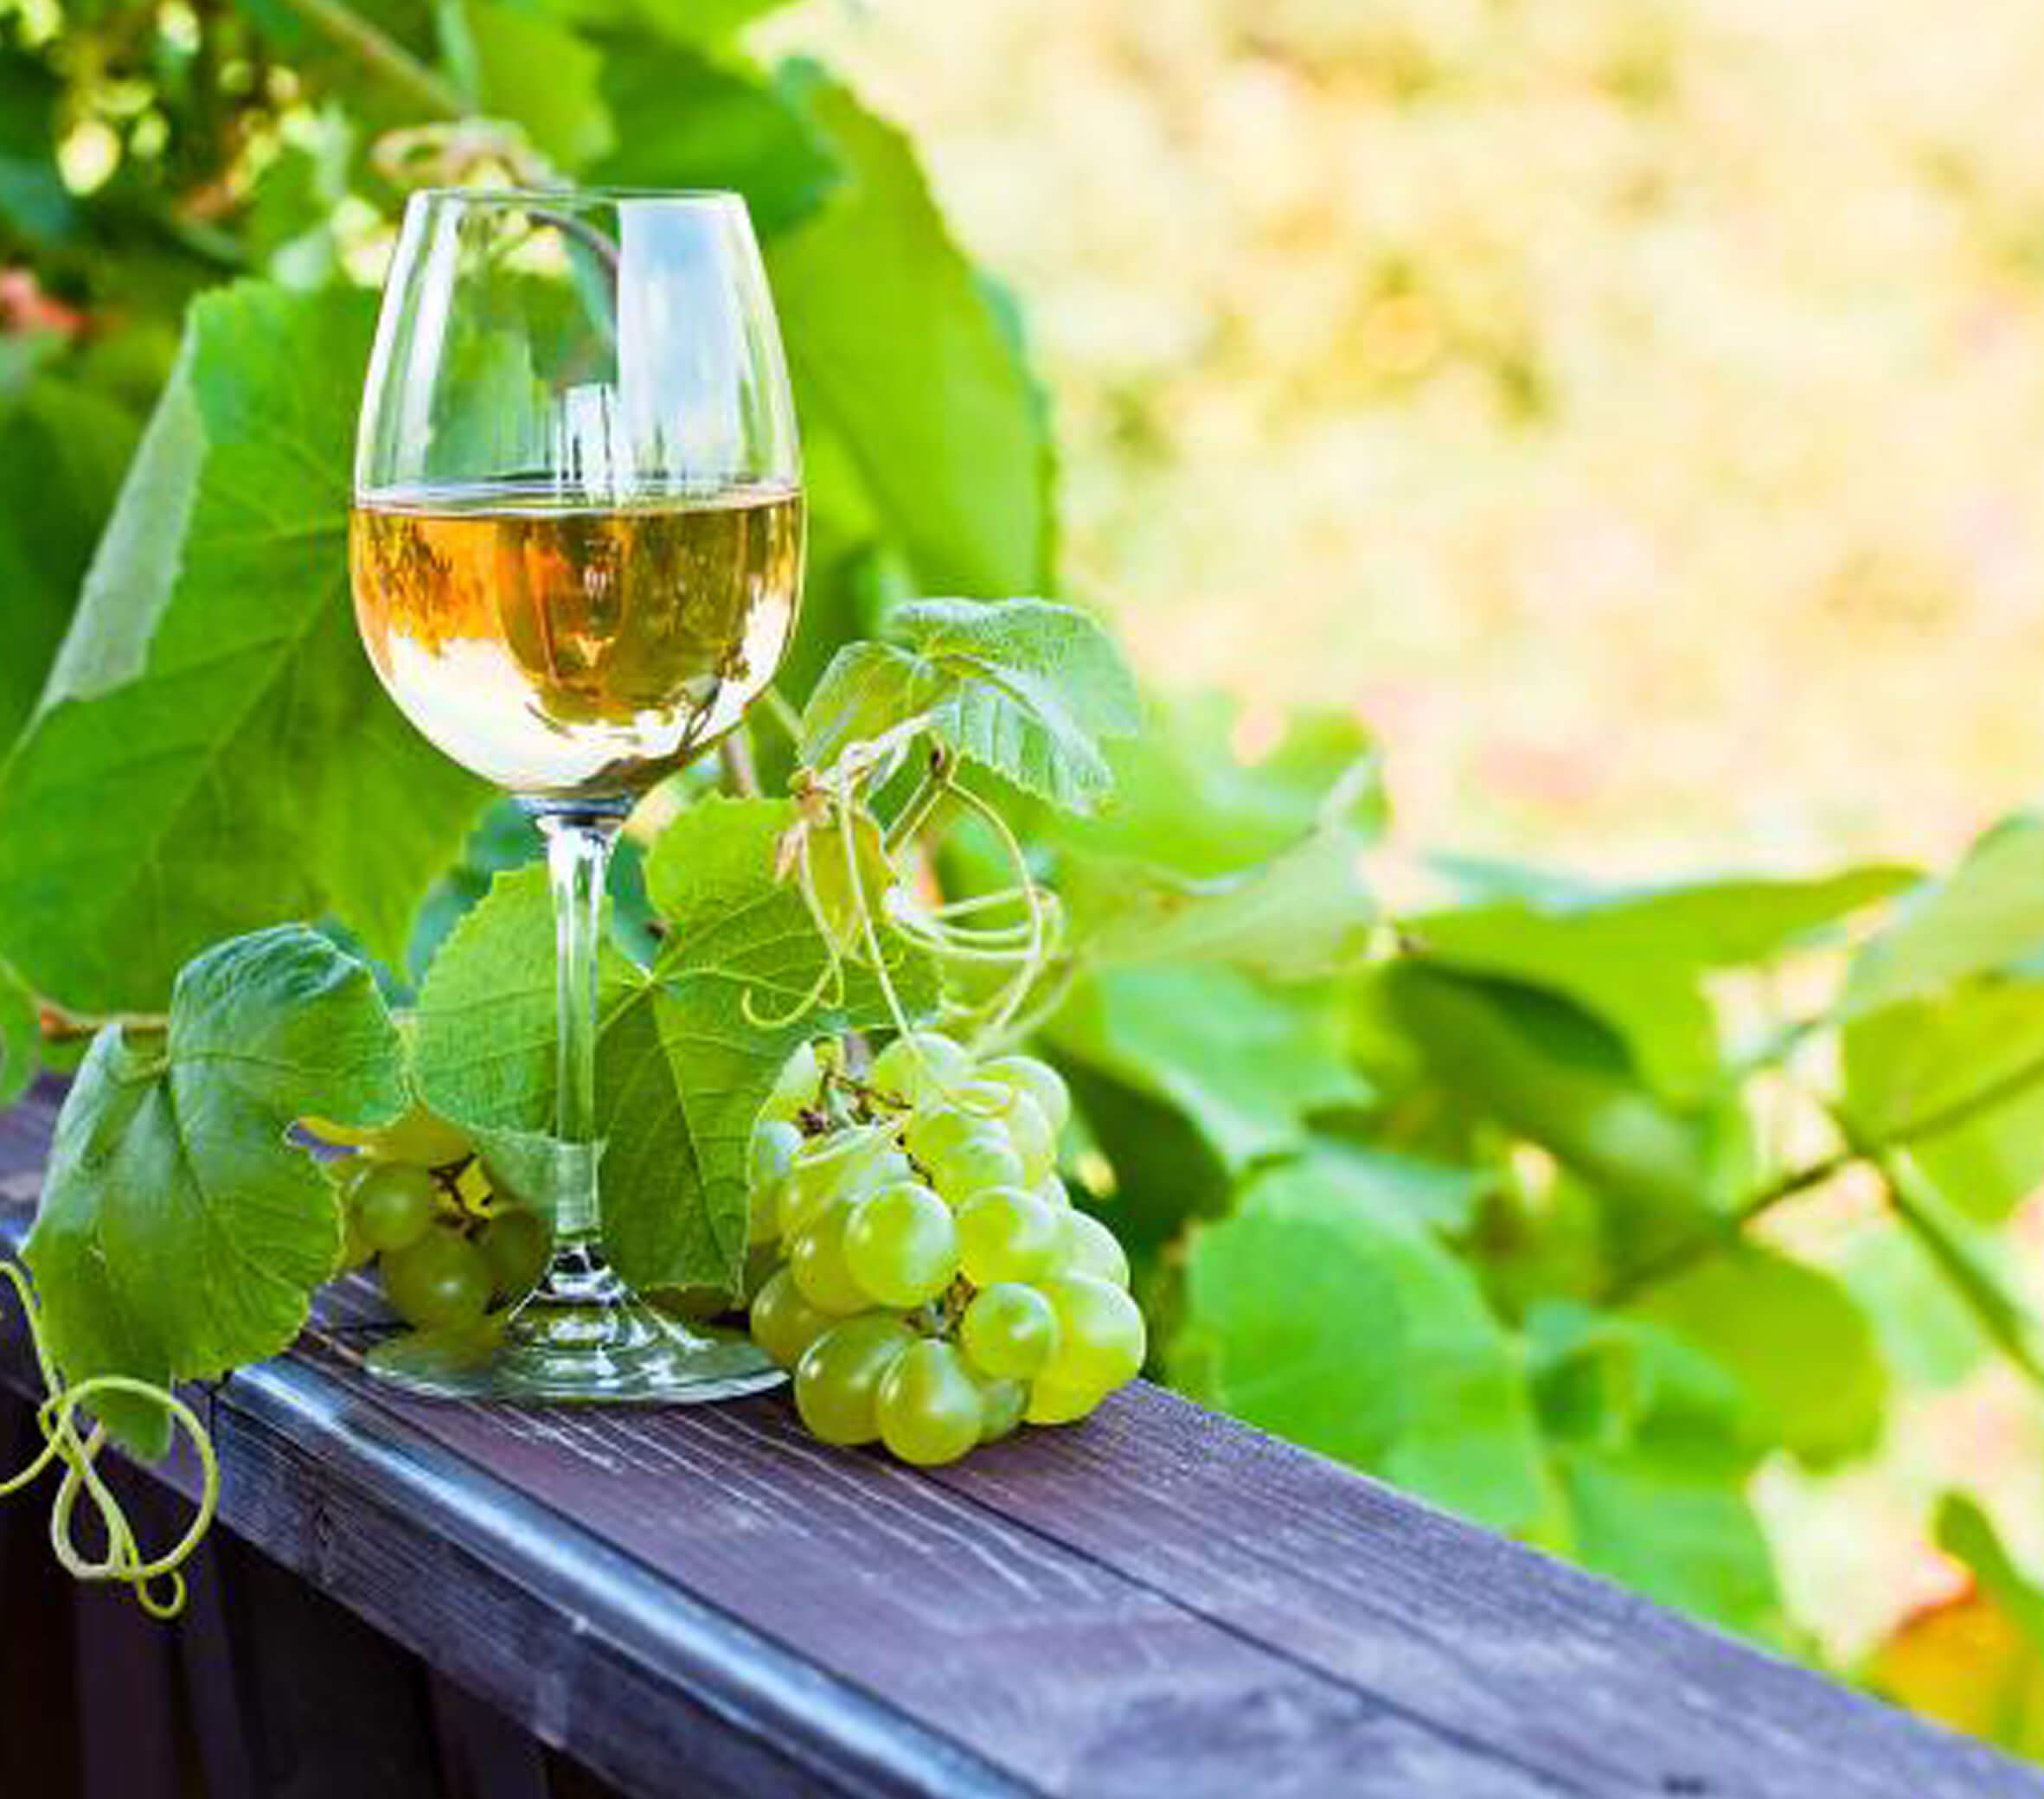 Best white wines are riesling